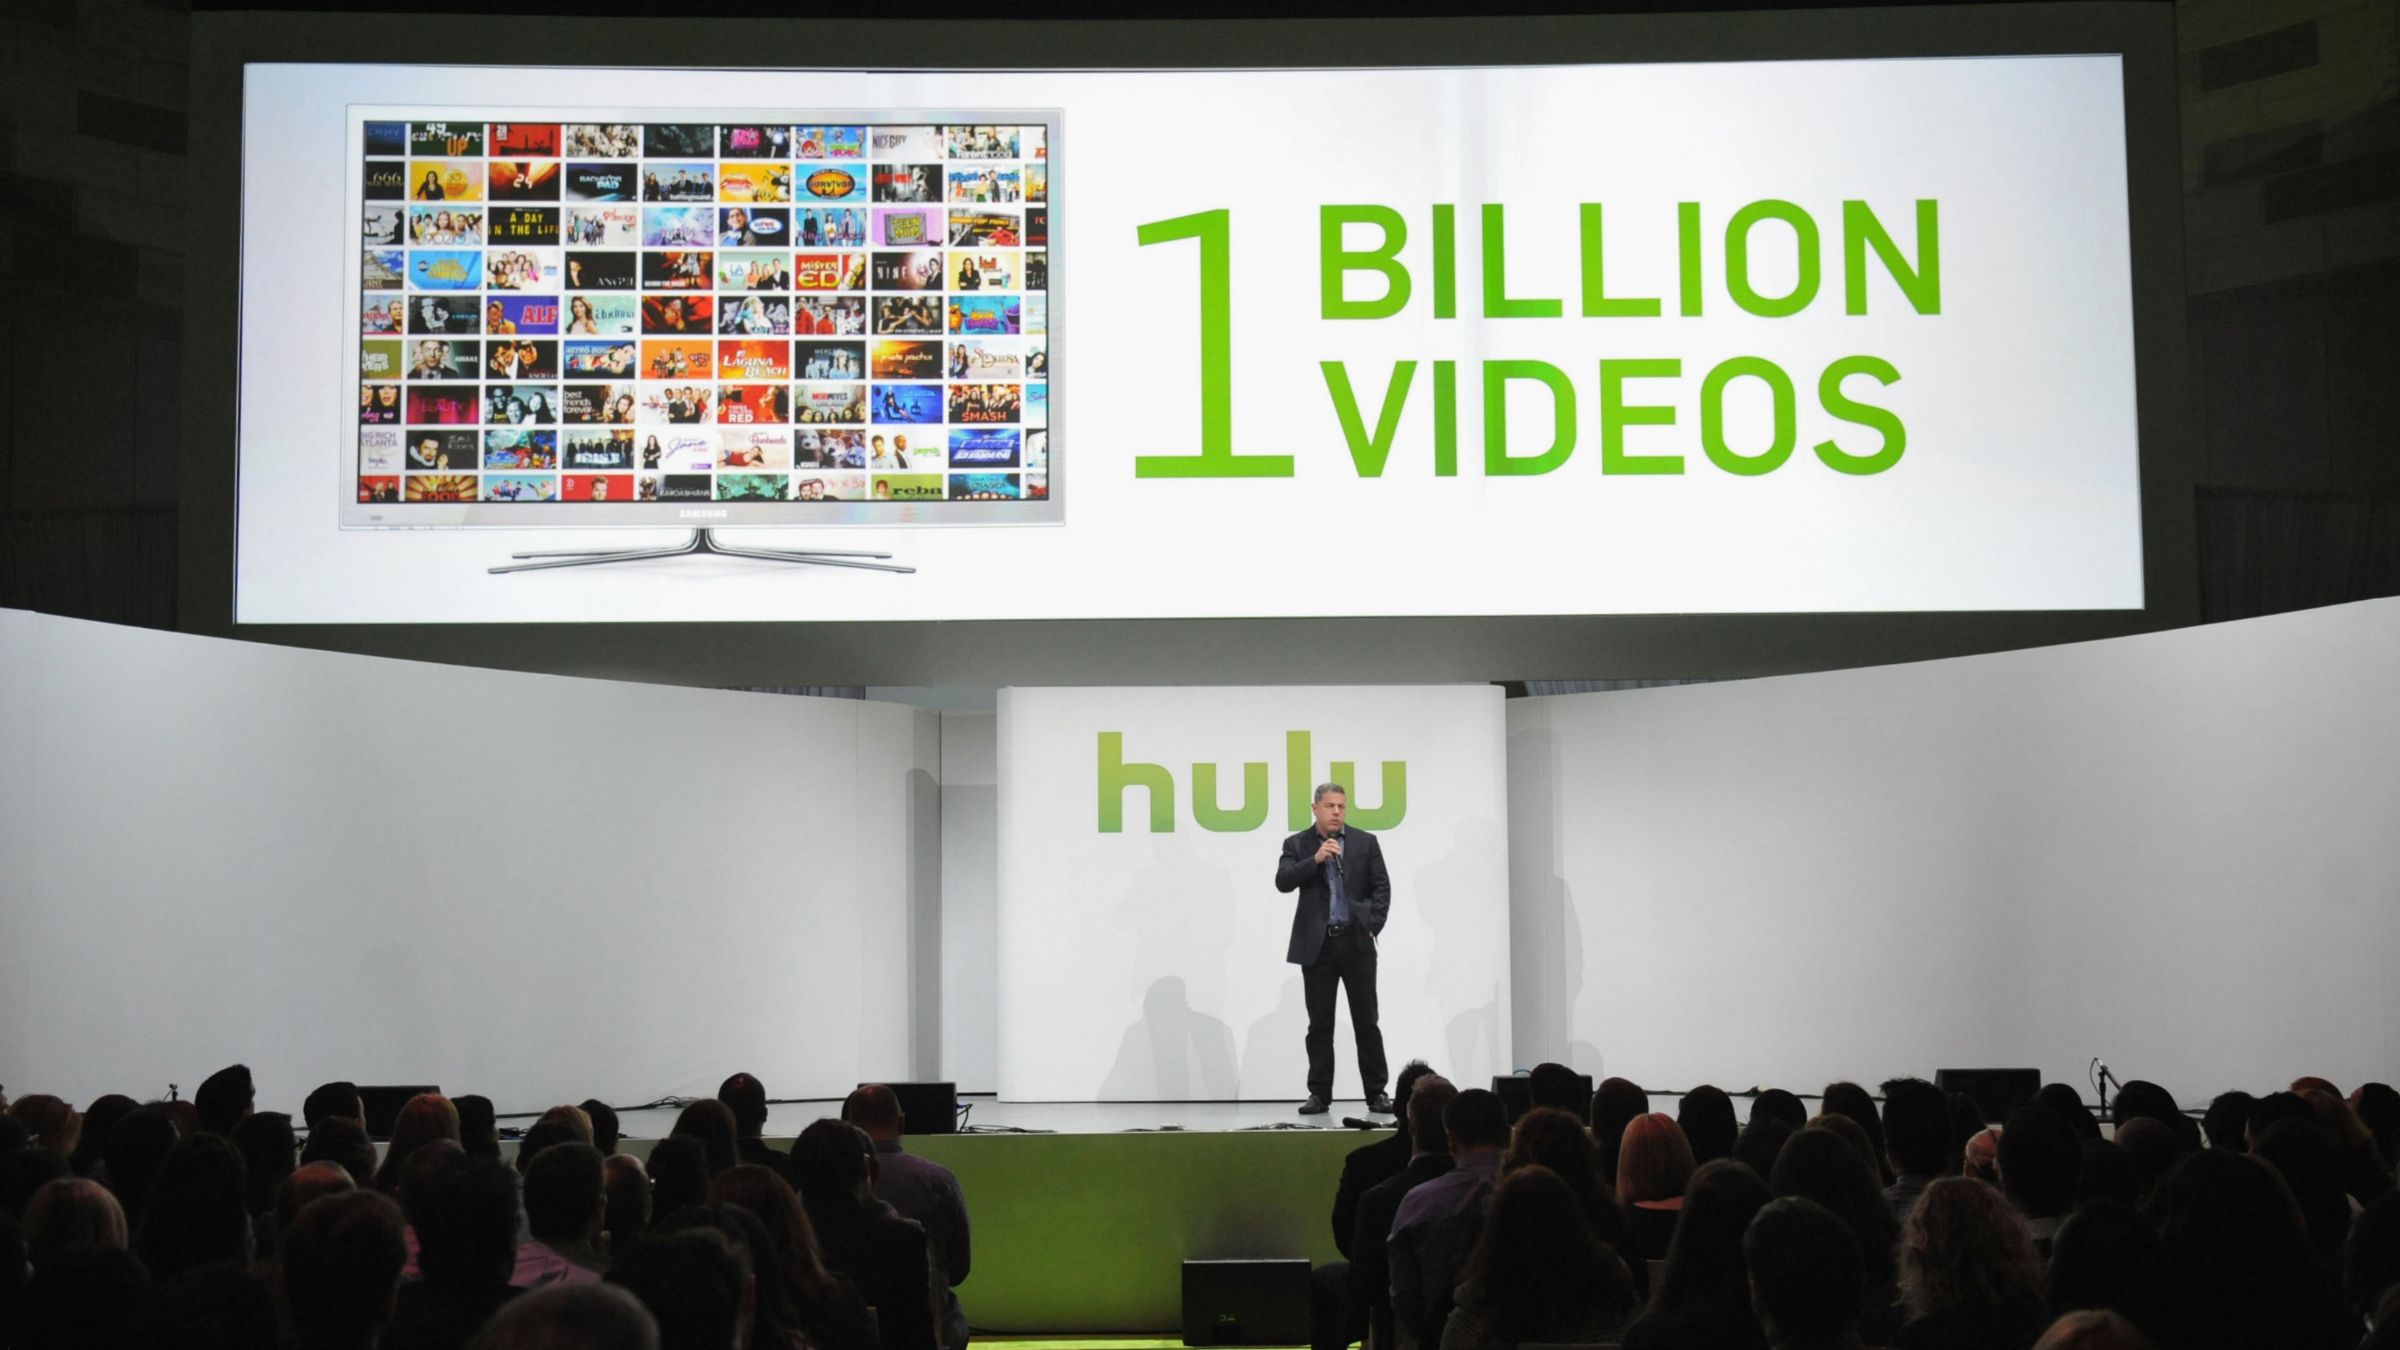 Hulu's acting CEO Andy Forssell